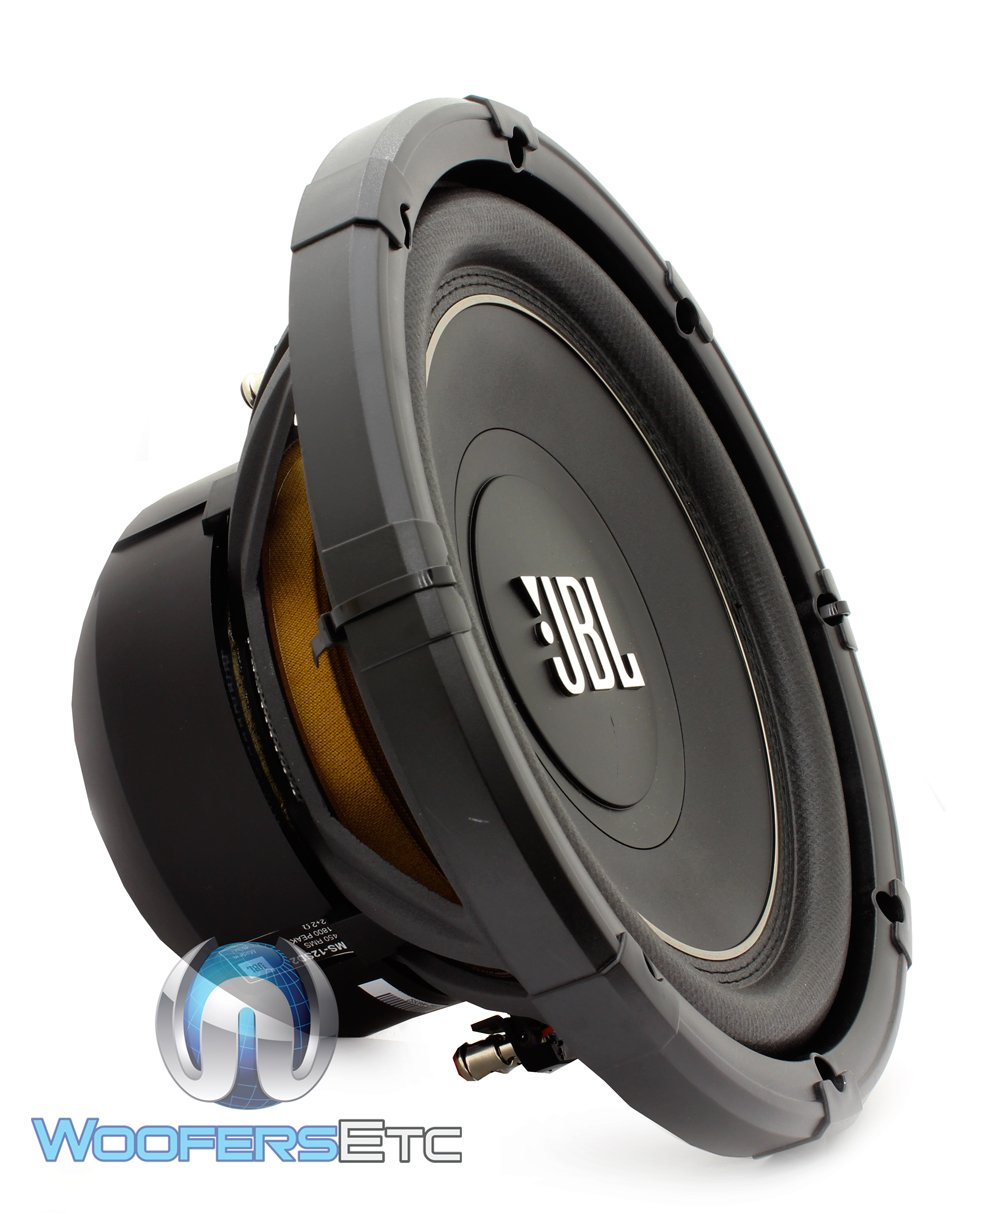 MS-12SD4  A 12'''' (300mm), high power-handling, dual voice-coil premium subwoofer